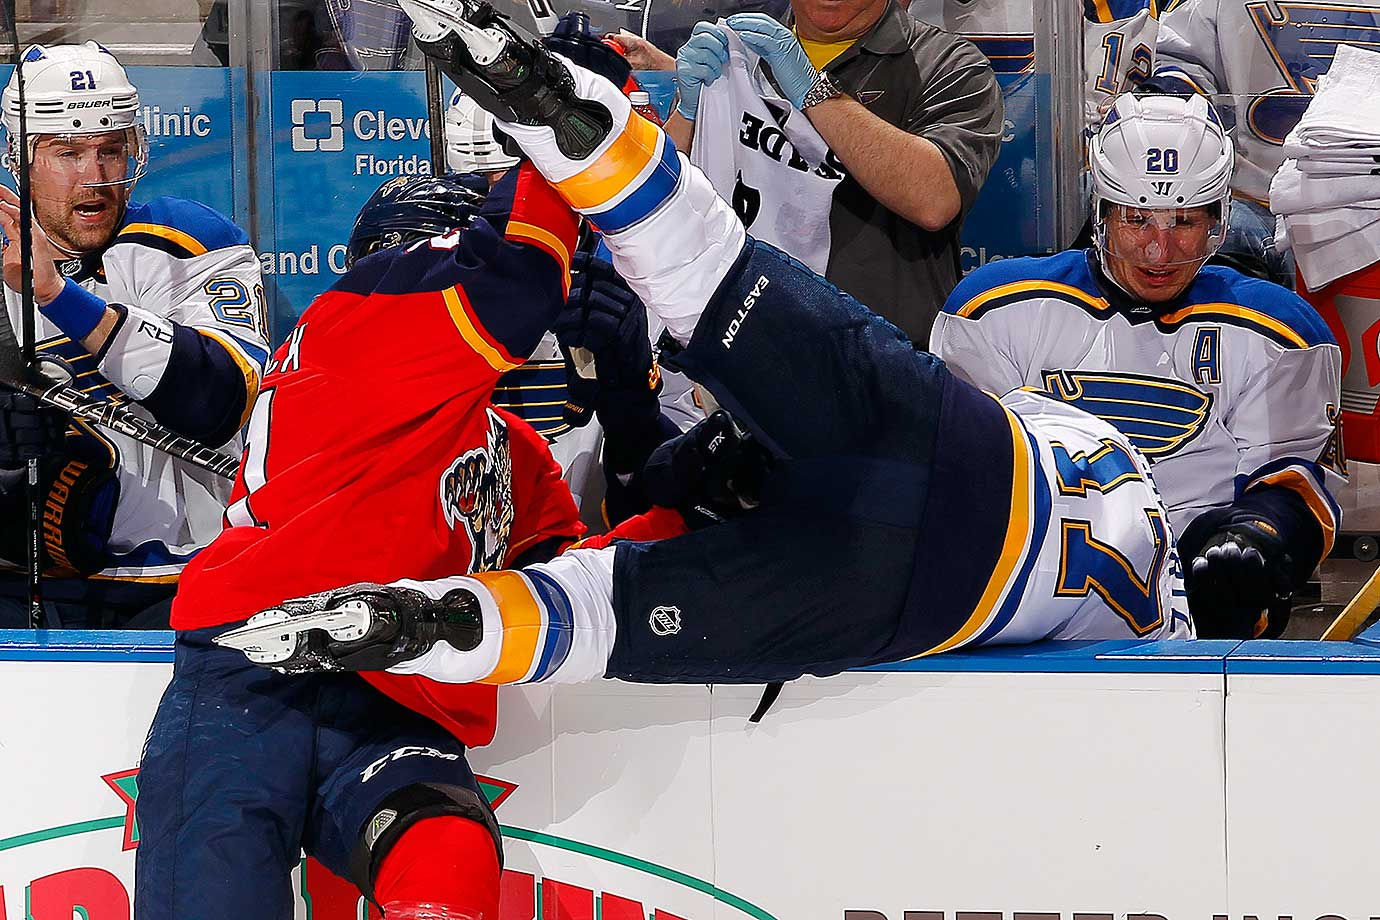 Jaden Schwartz of the St. Louis Blues gets flipped over the boards by Vincent Trocheck of the Florida Panthers.